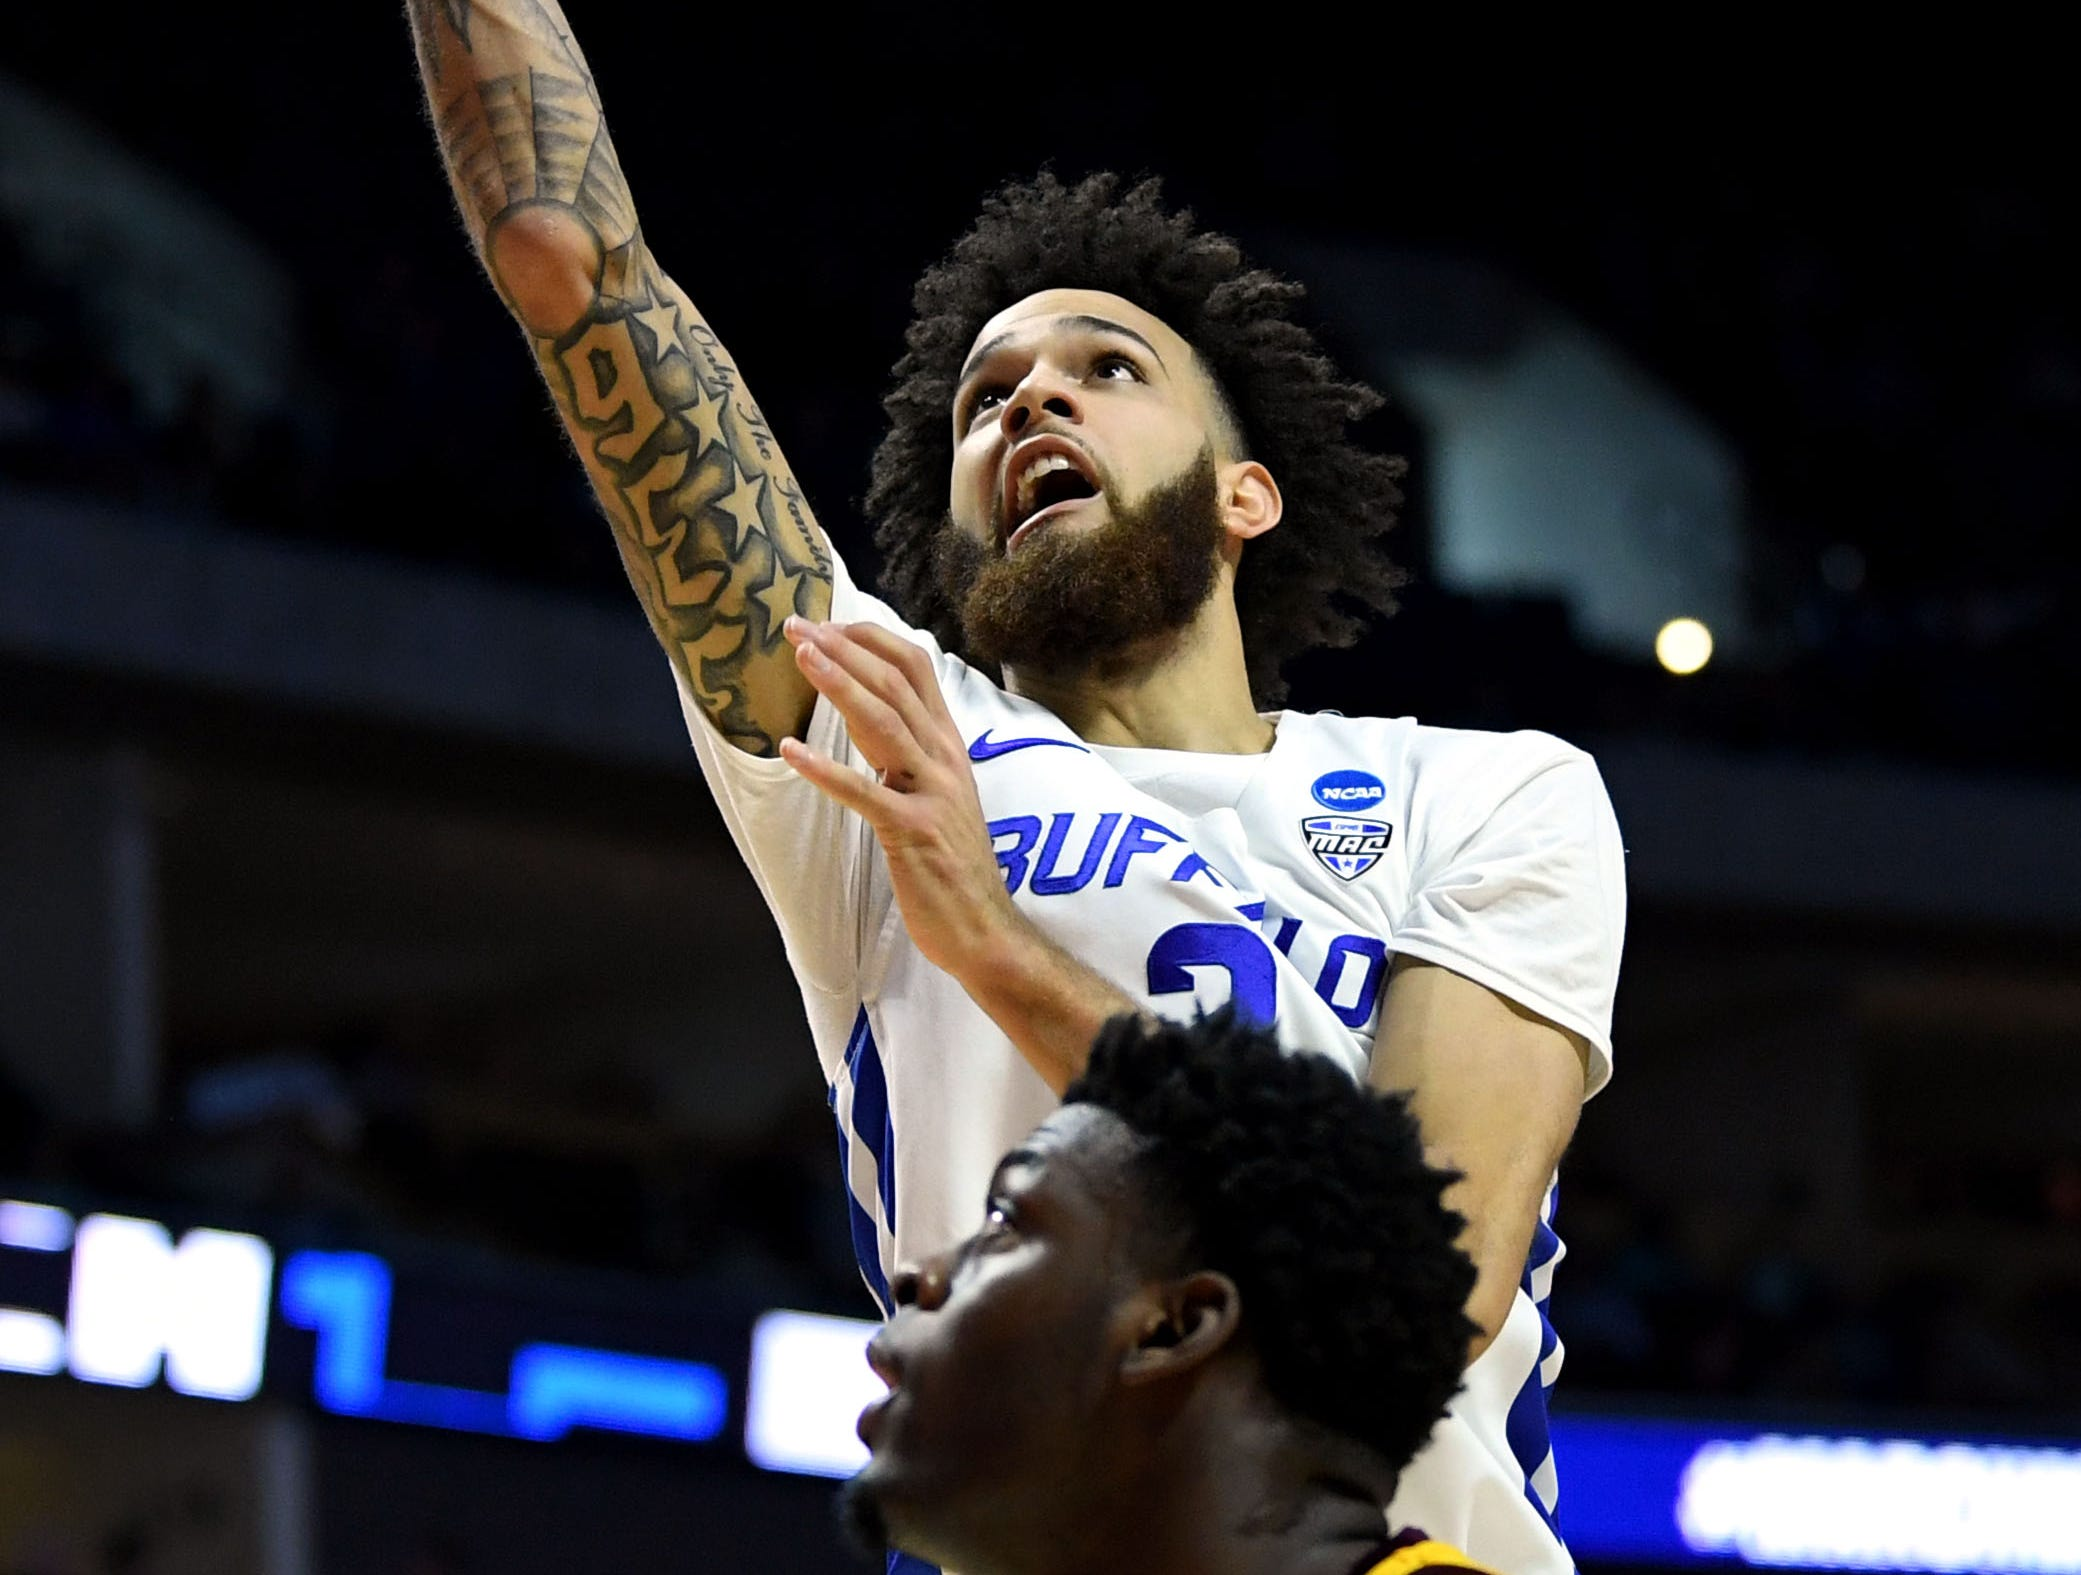 TULSA, OKLAHOMA - MARCH 22:  Jeremy Harris #2 of the Buffalo Bulls scores on a lay up in front of Luguentz Dort #0 of the Arizona State Sun Devils during the first half of the first round game of the 2019 NCAA Men's Basketball Tournament at BOK Center on March 22, 2019 in Tulsa, Oklahoma. (Photo by Harry How/Getty Images)